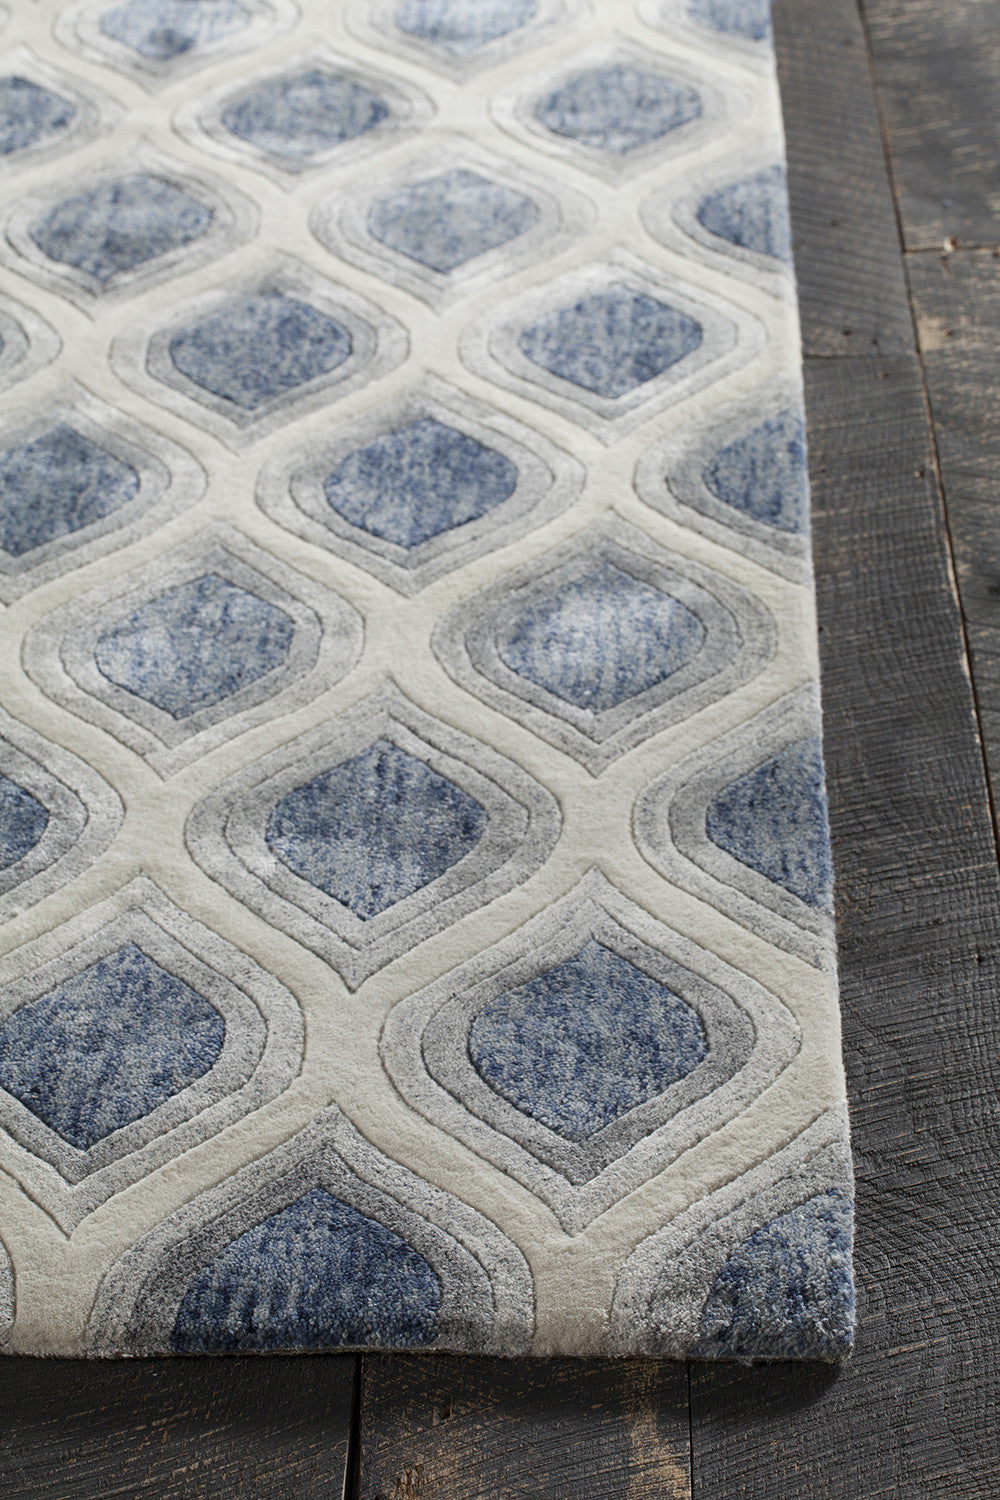 clara collection handtufted area rug in blue grey u0026 white design by chandra rugs